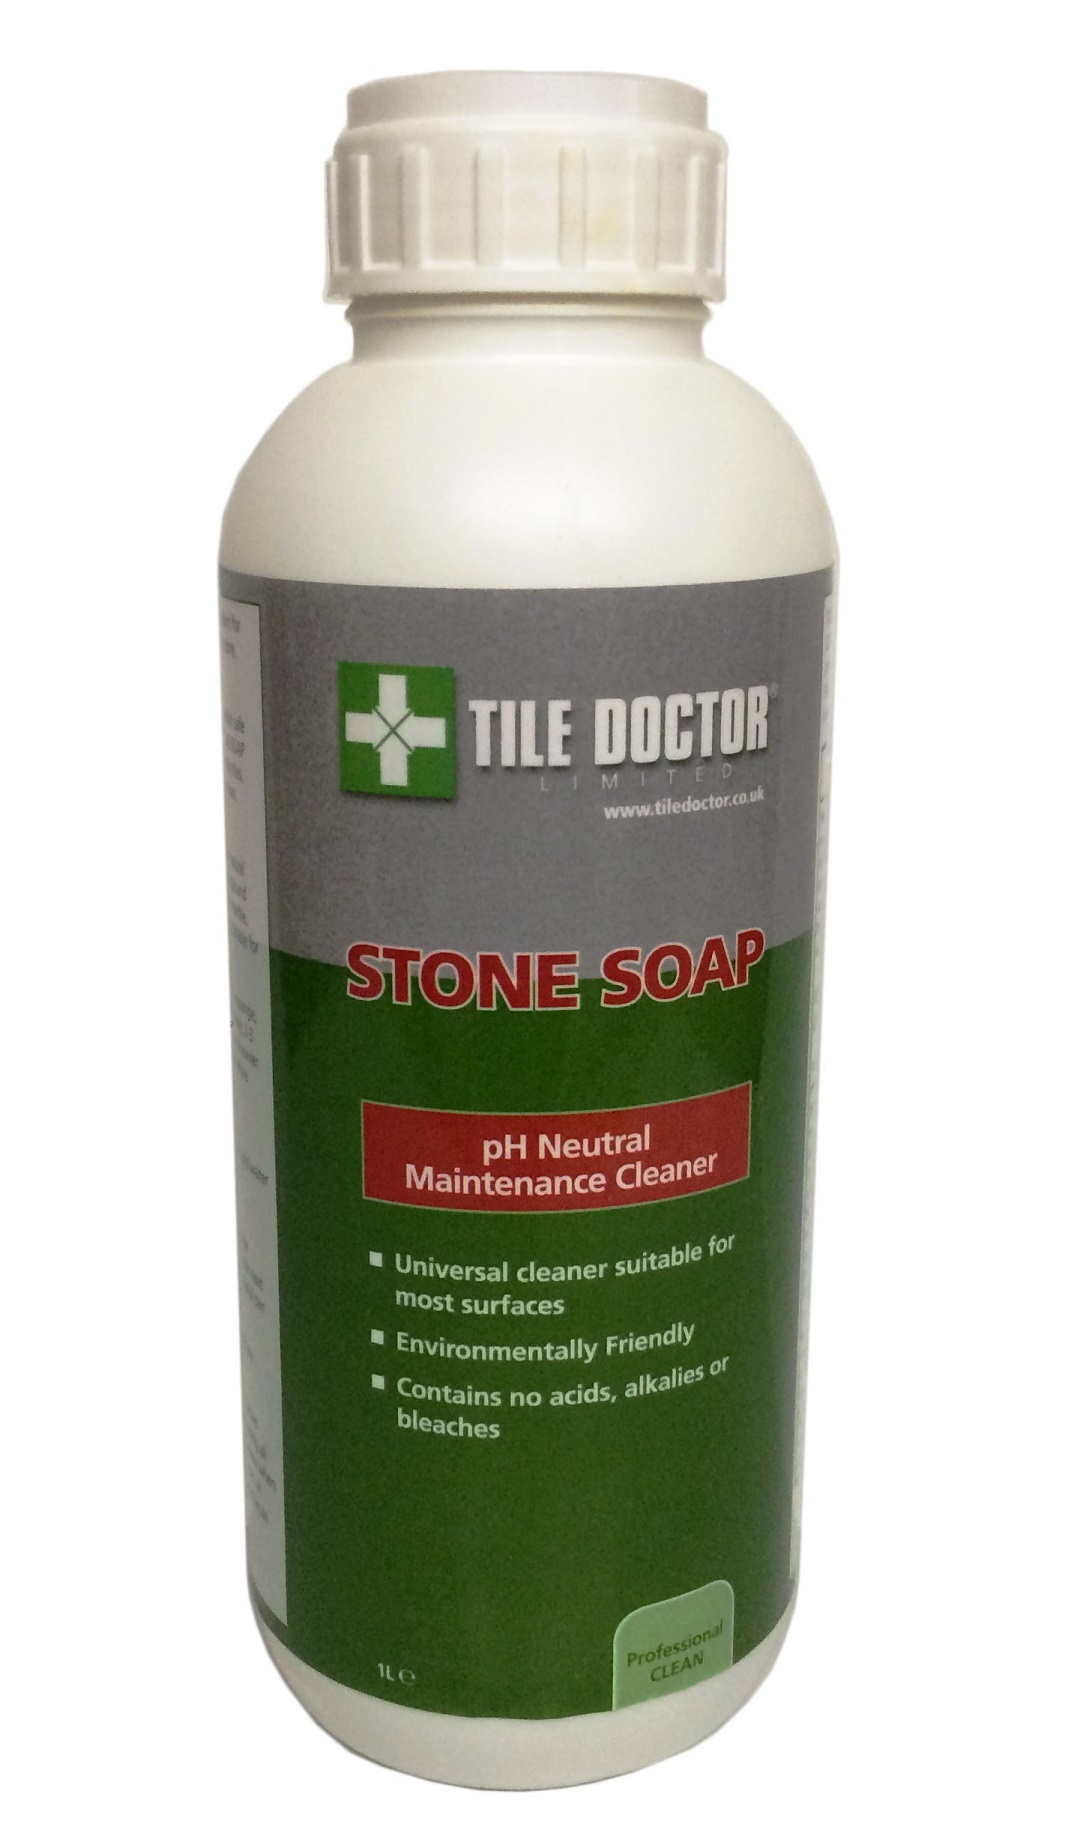 Tile Doctor Stone Soap